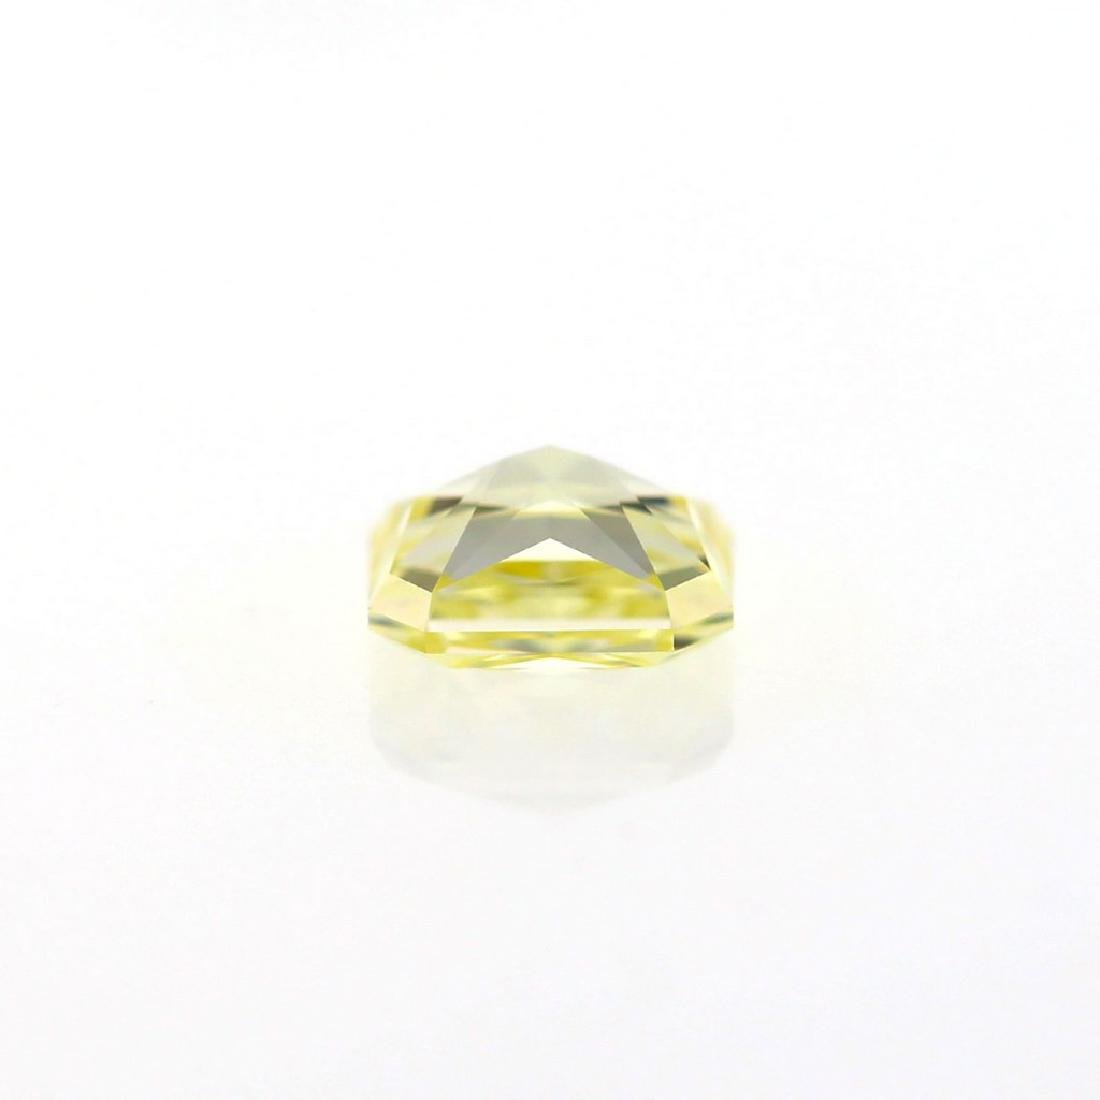 Natural Fancy Light Yellow 1.02 ct Cushion VVS1 - 2